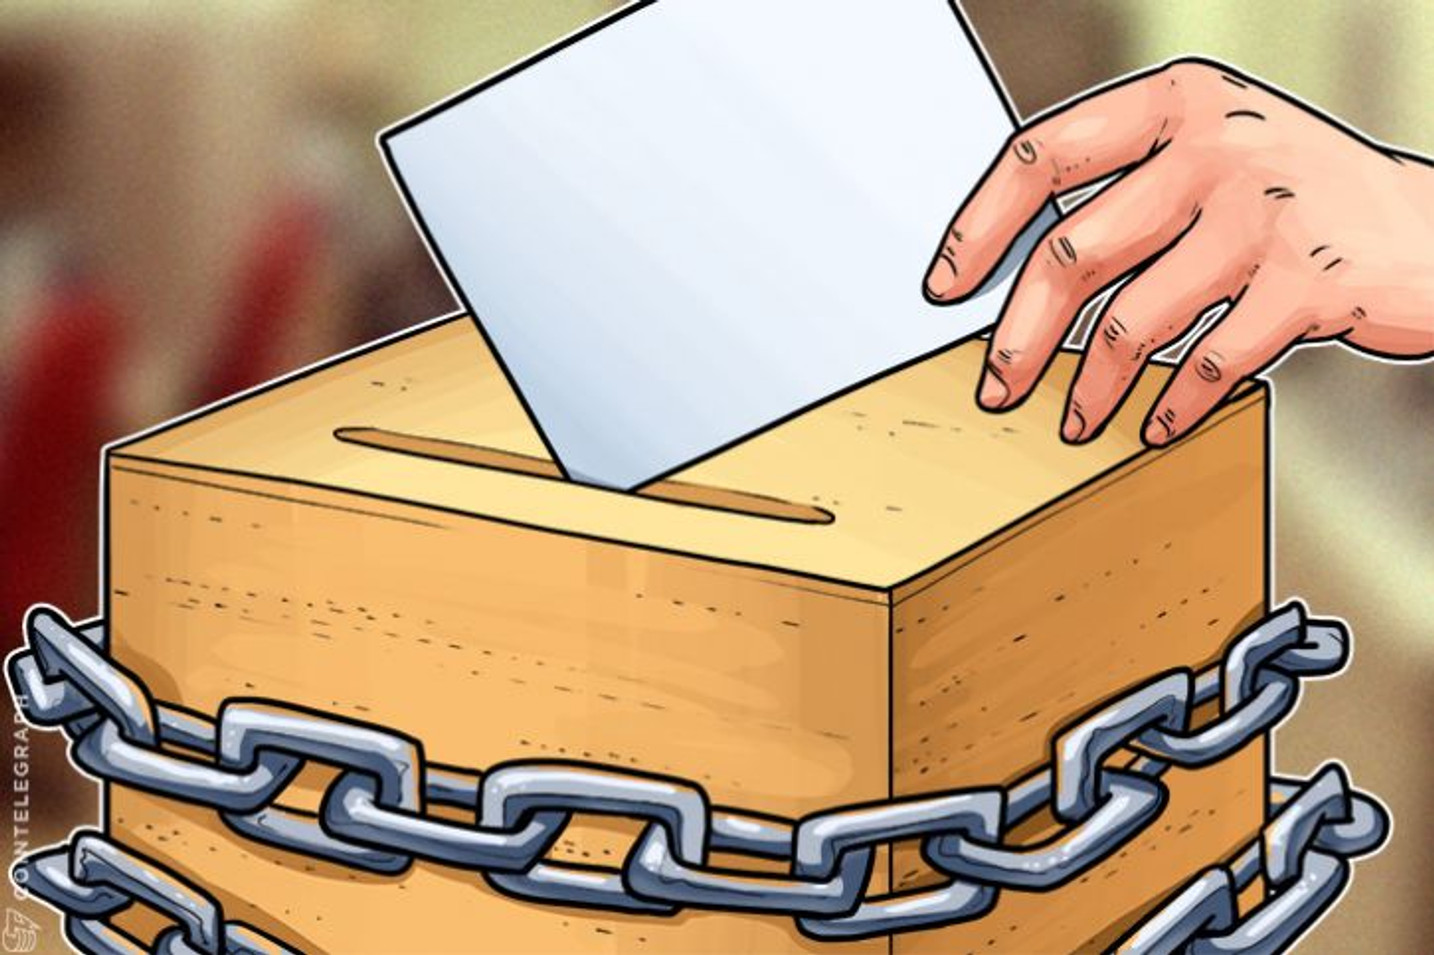 Russian Government Advances Plan to Test Blockchain Technology-Based Local Voting Systems